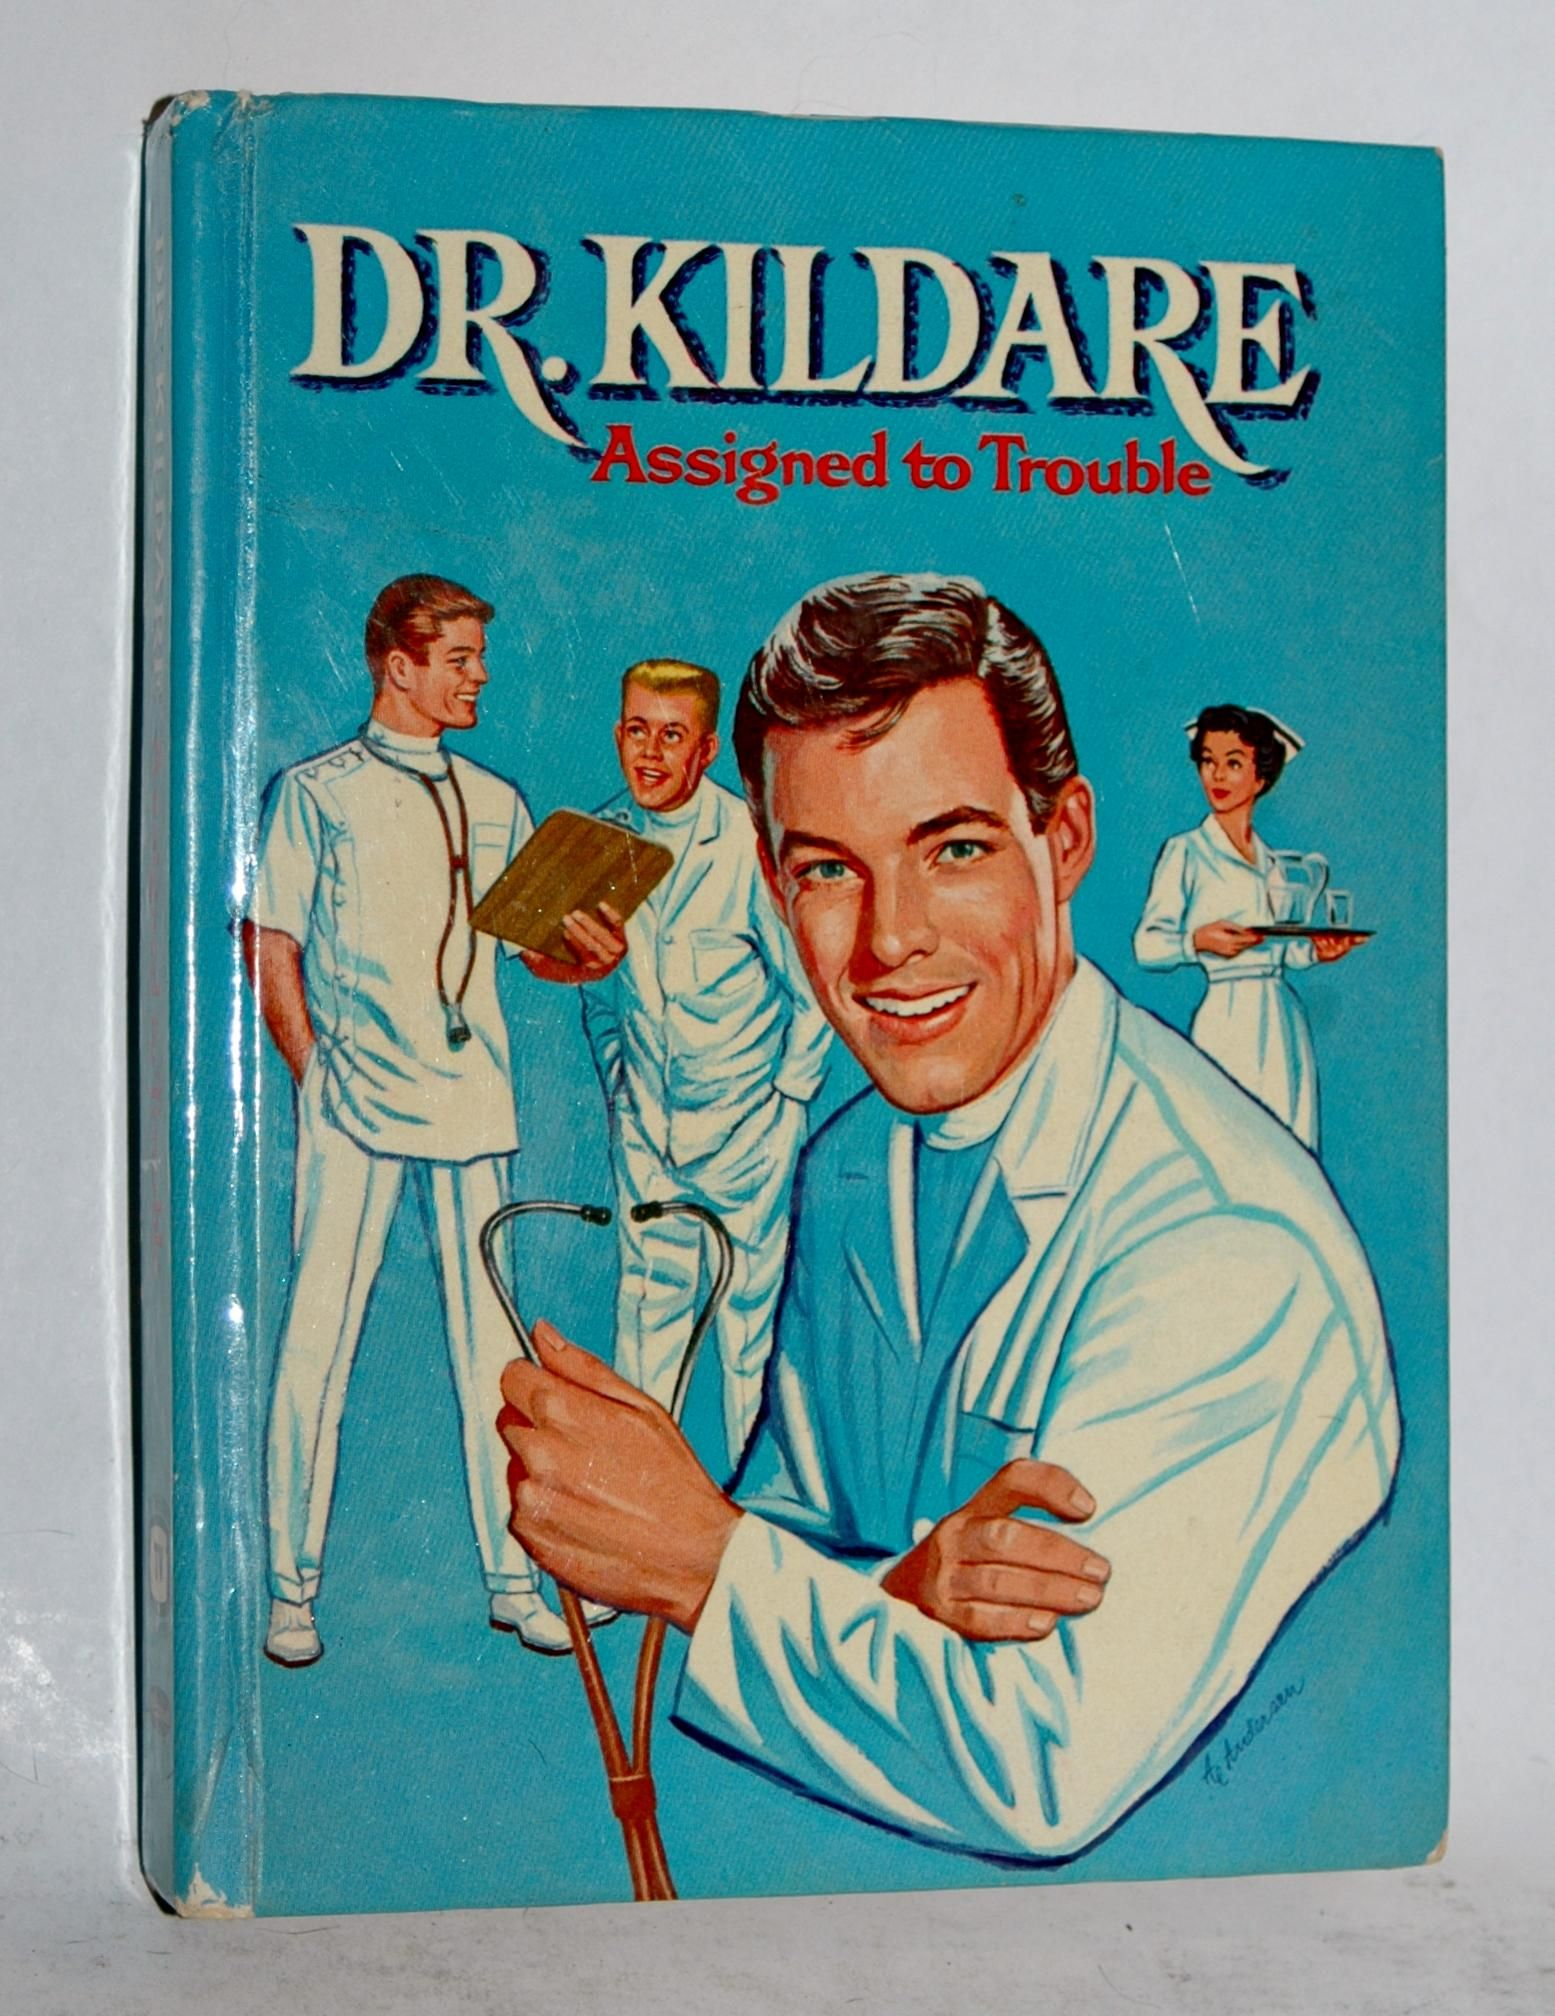 1963 Dr Kildare Authorized Whitman 212 Page Book